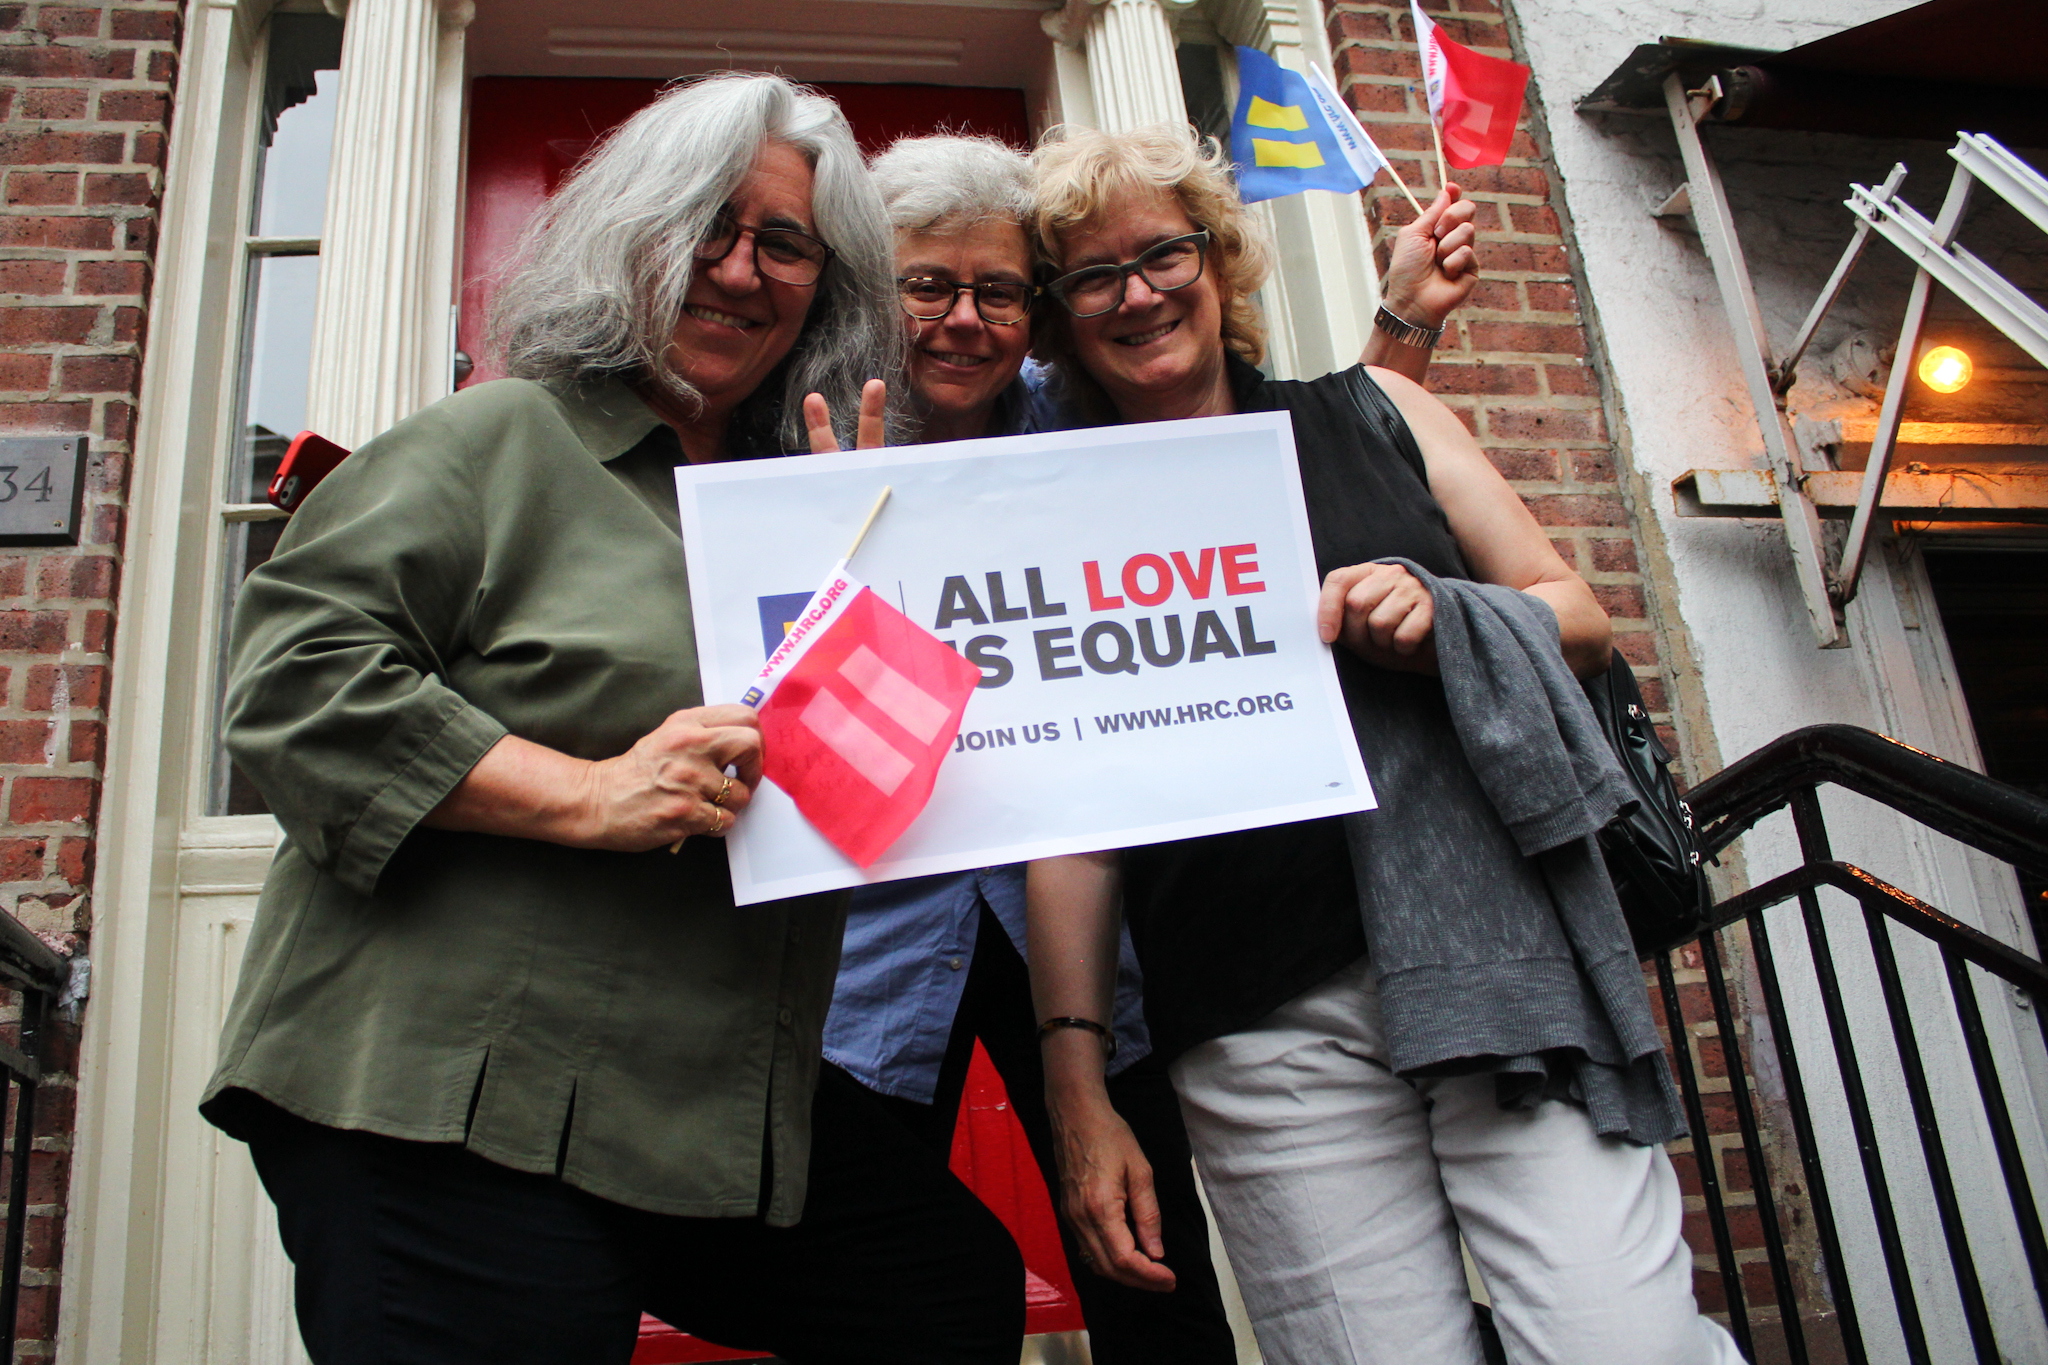 Gay Pride Photos: Celebrating DOMA's demise